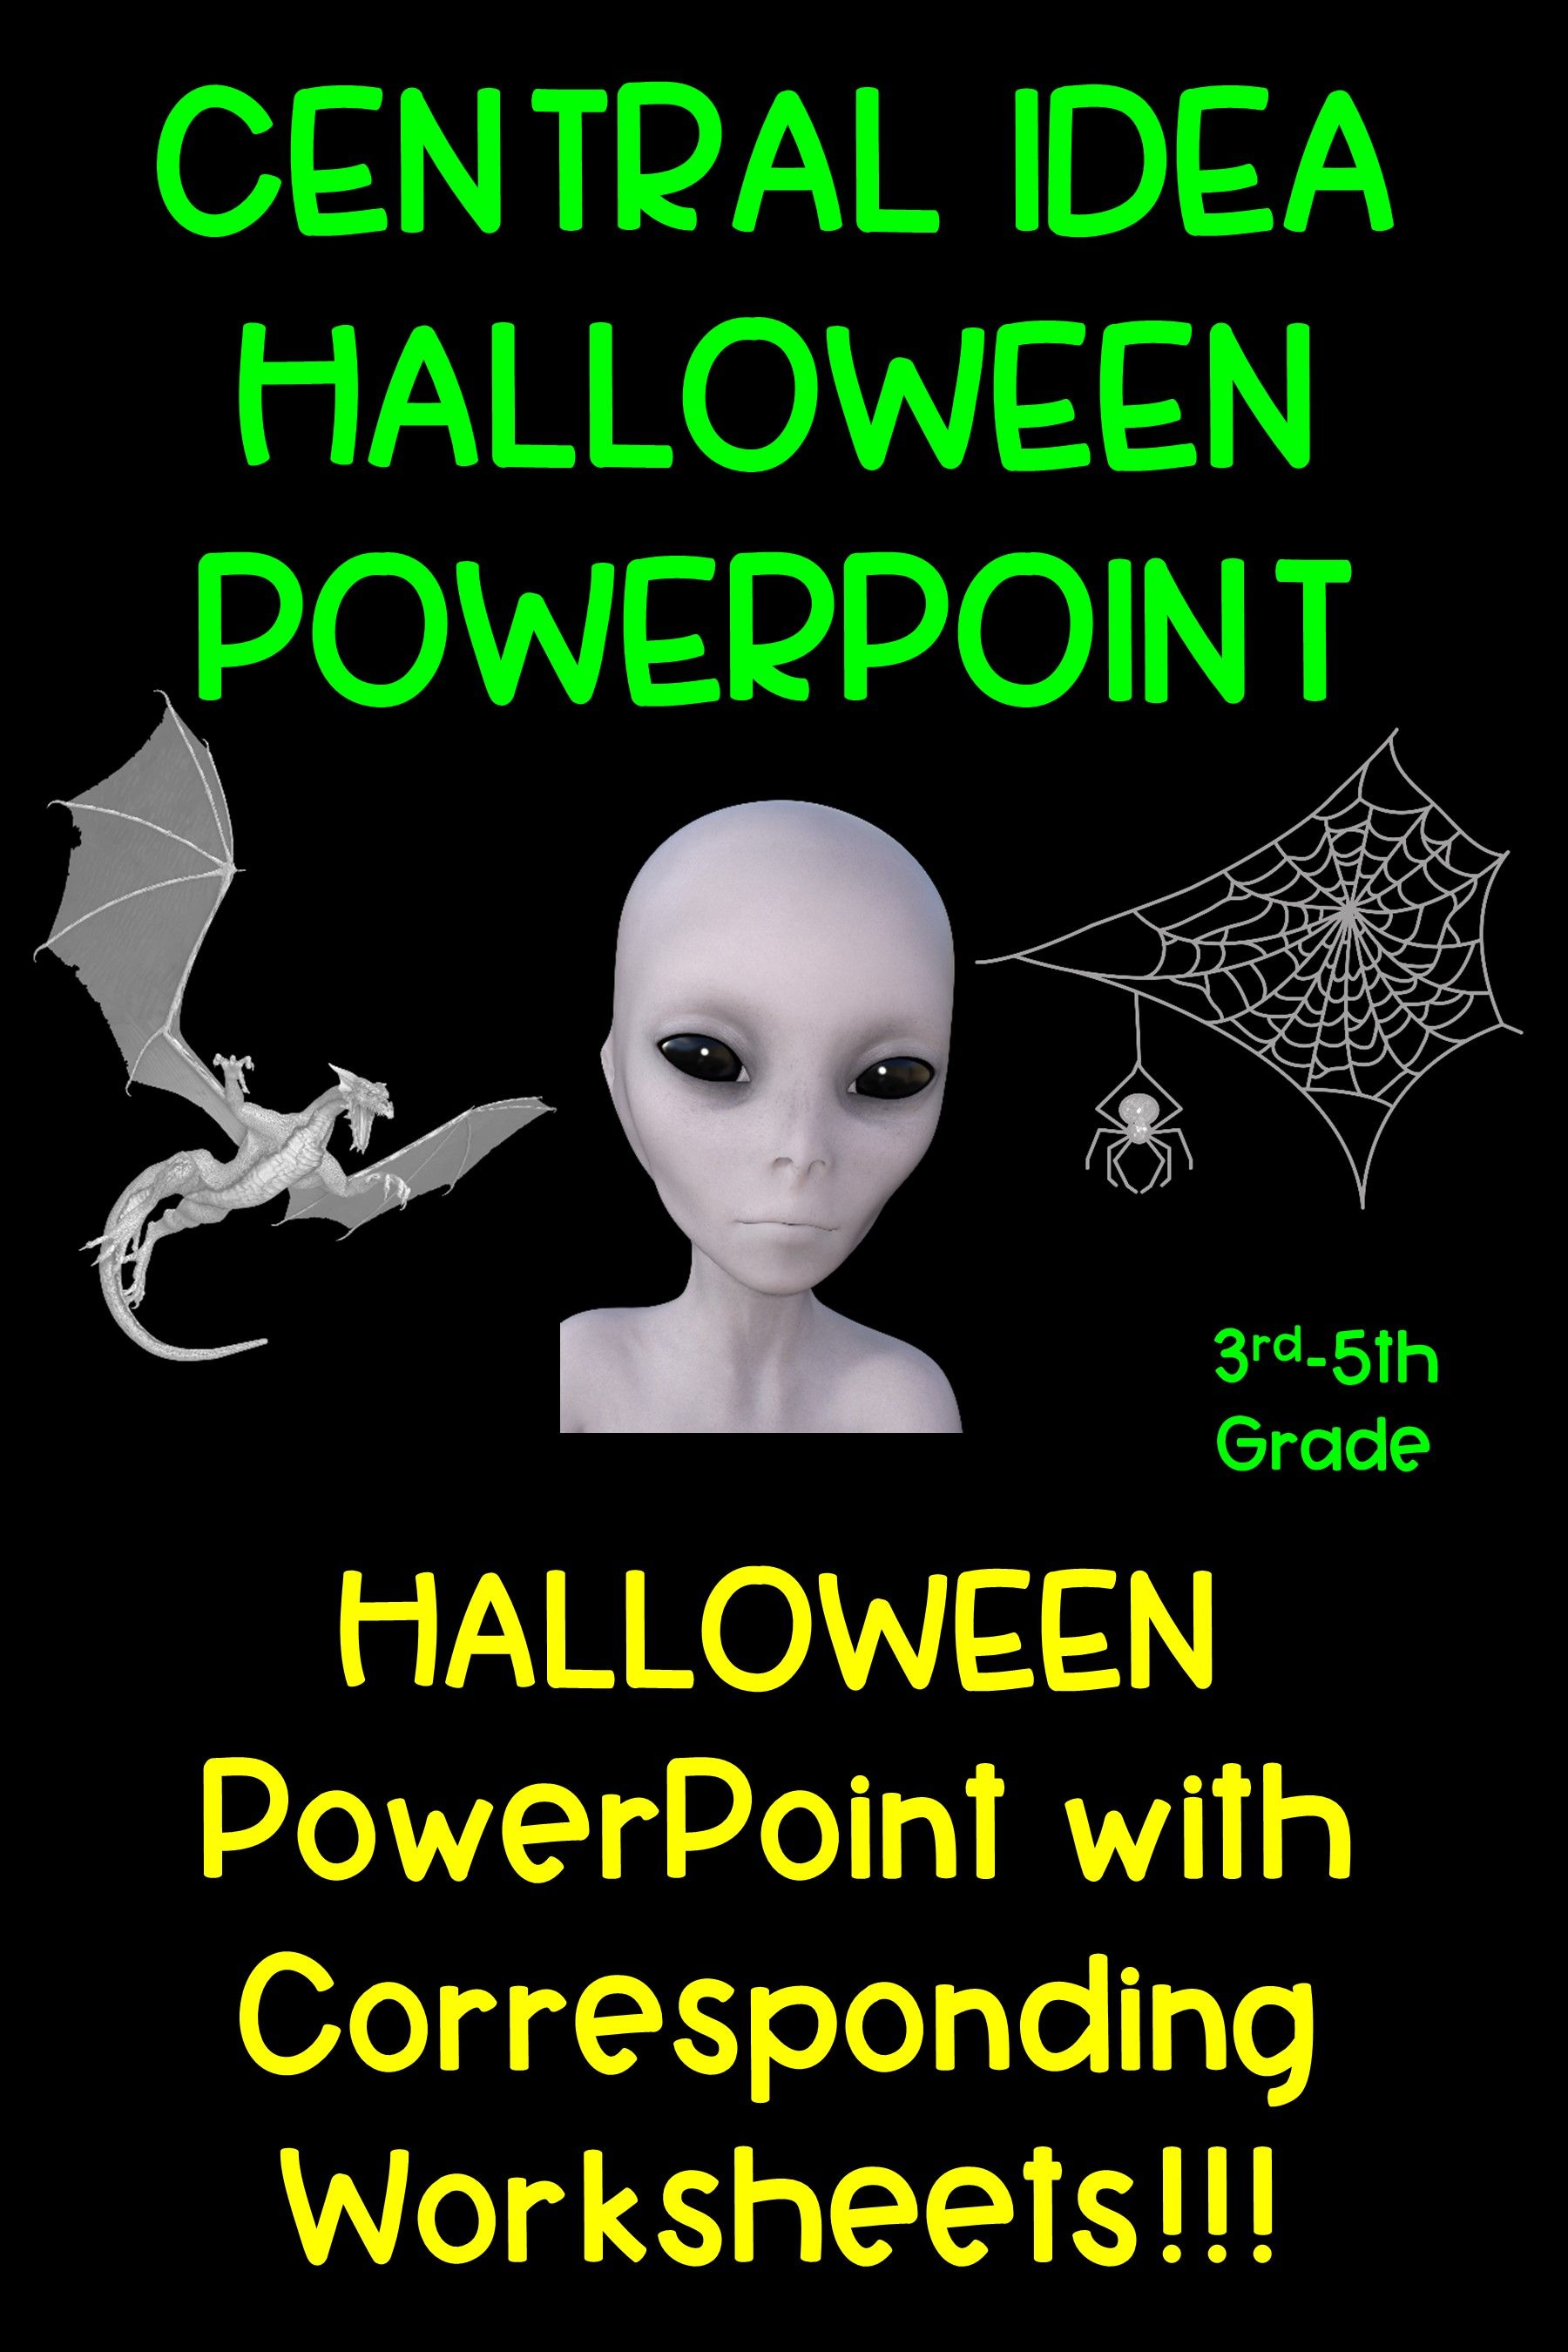 Central Idea Halloween Powerpoint